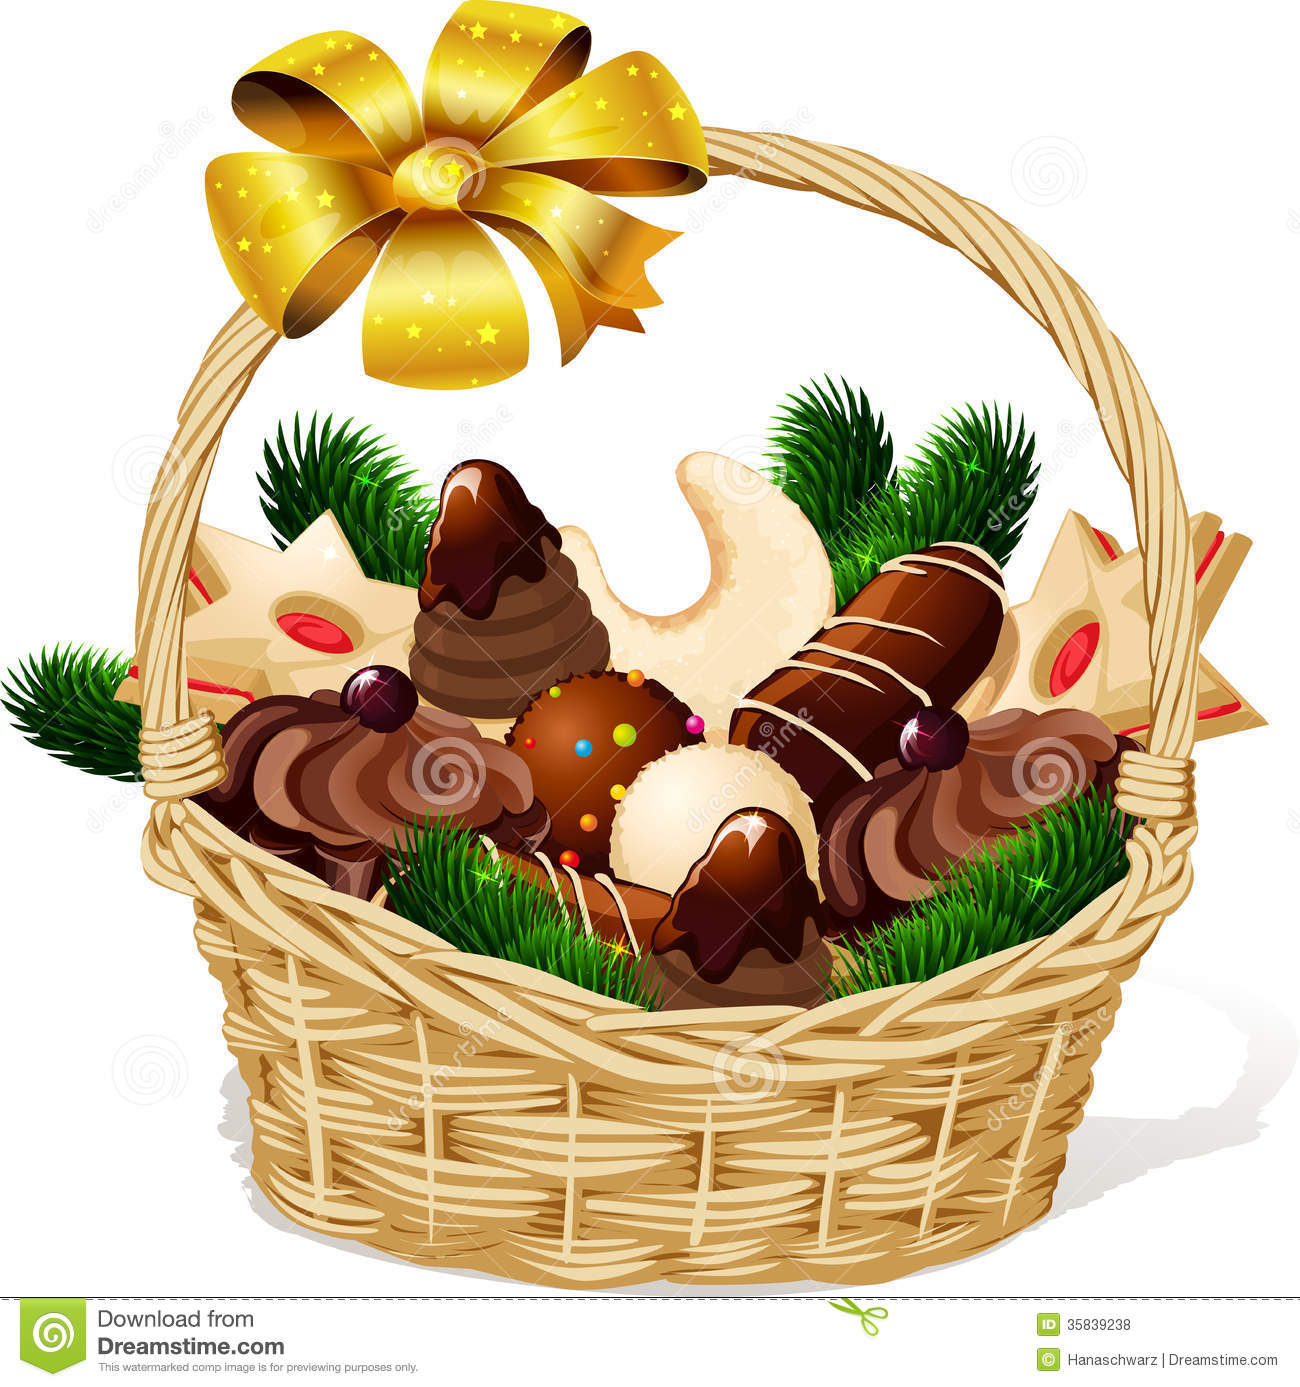 Clip Art Christmas Basket : Christmas cookie in basket royalty free stock photos